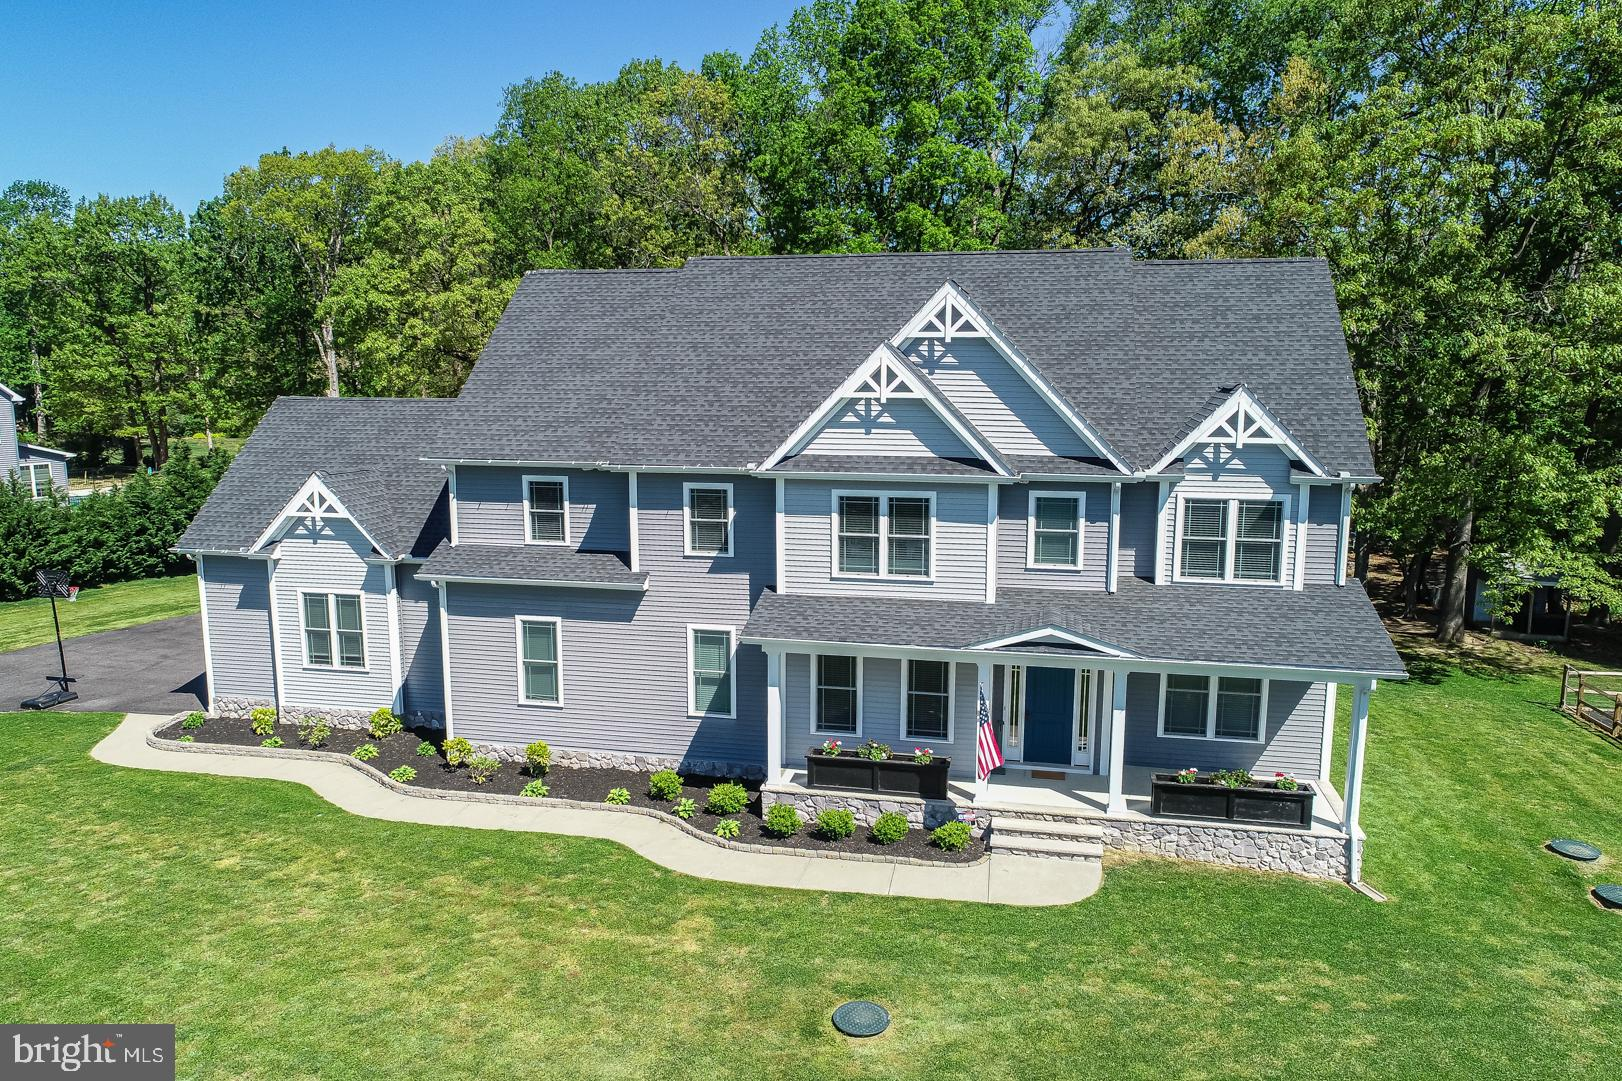 Welcome to your dream home! This beautiful custom home was built by C&M Homes in 2016. Located in the golf course community of Jonathans Landing it is just minutes from Rt. 13. The beautiful partially wooded lots backs up to wetlands, ensuring no future development.  Every detail has been thoughtfully addressed. The kitchen is ready to bring out your inner chef. Granite countertops, tile back splash, hardwood floors, and a large island will make cooking a joy. Pssst. There's a pull-out mixer shelf tucked away in the island! You have plenty of storage in the cabinets AND a large walk-in pantry.  The stone fireplace in the 2-story great room is topped off with an authentic barnwood mantle.  The craft room on the first floor is a great place for the hobbyist or a play area for the kids. There's ample storage in the large closet and vinyl flooring for easy care.  In the mood for a movie? The noise isolated home theater room has a 150 inch screen and connections for projector and 11.2 Dolby Atmos surround sound. This room has double drywall, acoustic ceiling and solid wood exterior door to isolate sound. Also has dual separate 20 amp  electric circuits to run the equipment. Floor step down for stadium seating with integrated step lights.  All bathrooms have tile floors. The main bath has a large soaking tub and separate shower with glass doors. The main bedroom closet will knock your socks off. It is huge! There are also 2 storage cubbies that are completely finished to store miscellaneous items like your Christmas decorations.  The large loft at the top of the stairs has space for a home office, reading nook, or study area for the student.  Everyone wants to stay connected today. This home is hard-wired for Category 6 Ethernet in all bedrooms, living room, loft and home theater. No need to worry about weak signal!  For your security the 4-camera on-site closed circuit security system with recording capability has you covered. Full home is offsite-monitored, online secur